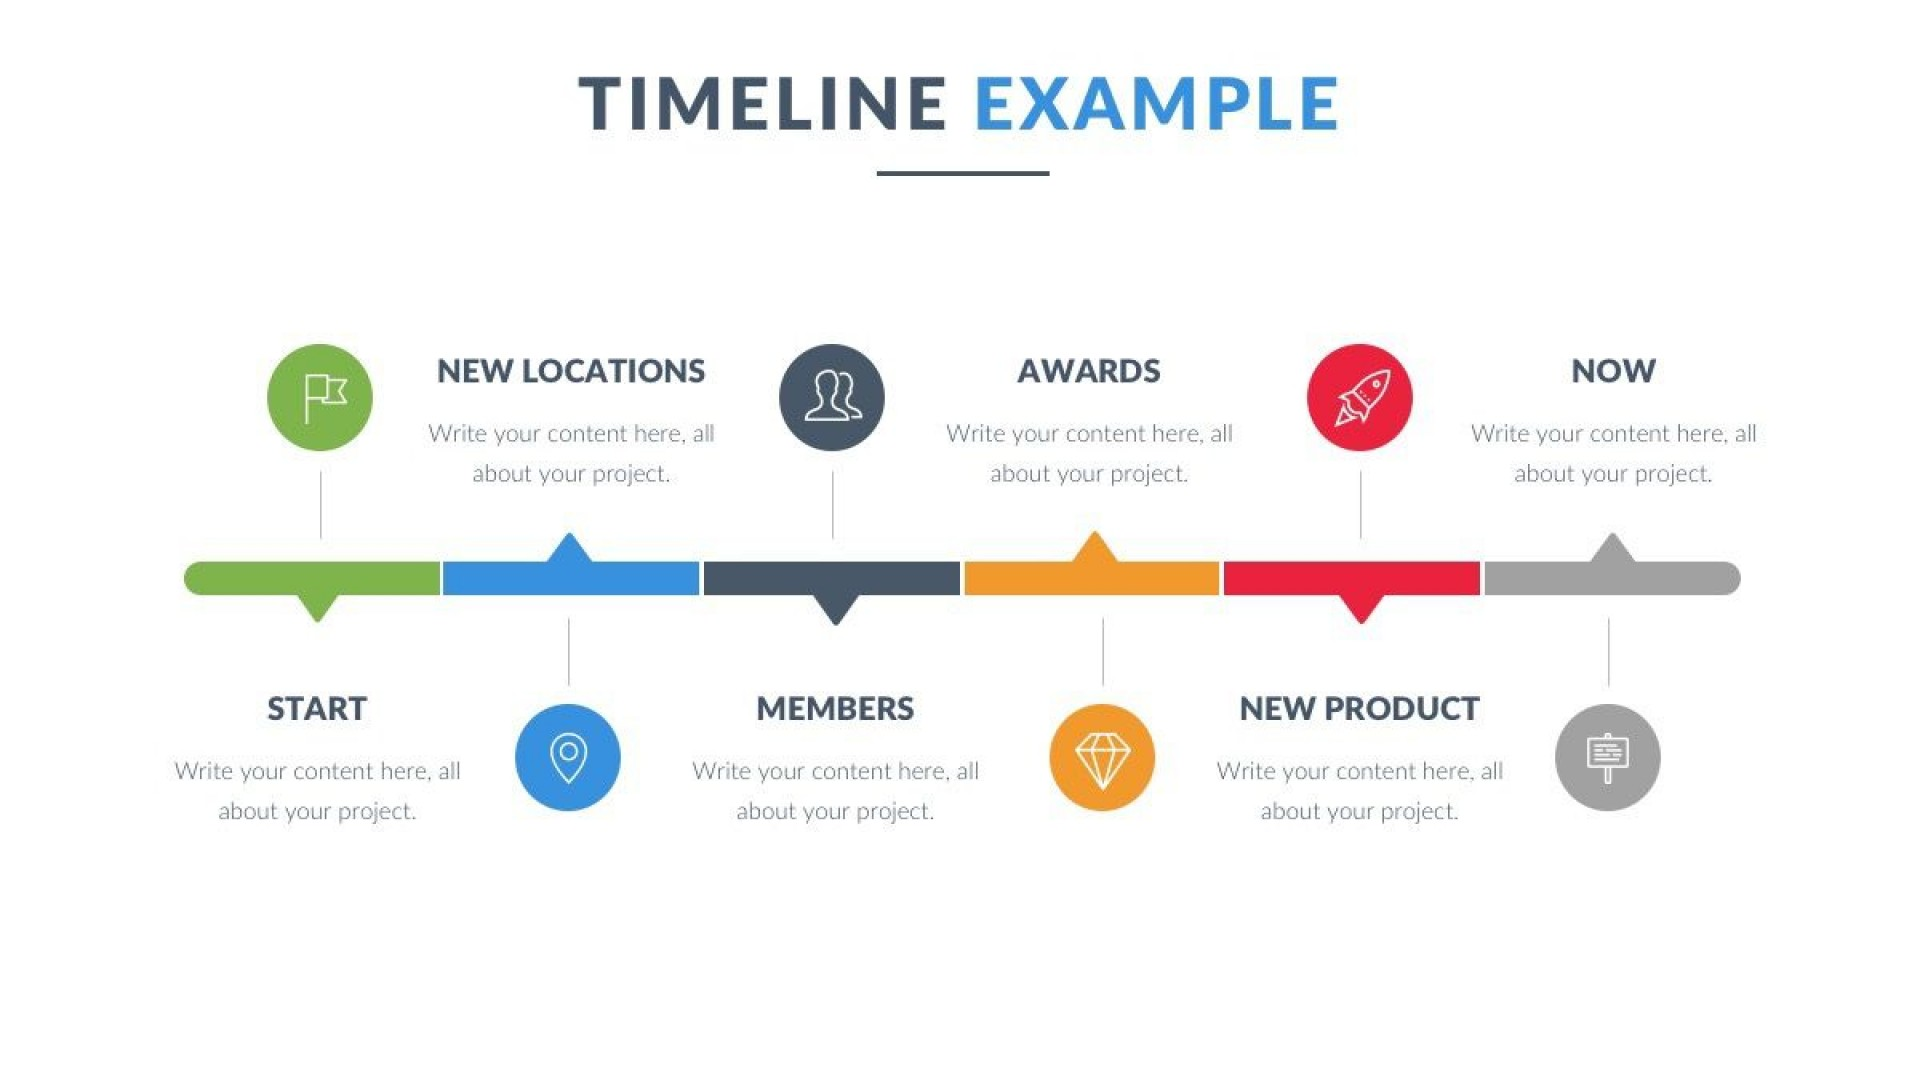 008 Wonderful Timeline Template Pptx High Resolution  Powerpoint Project1920